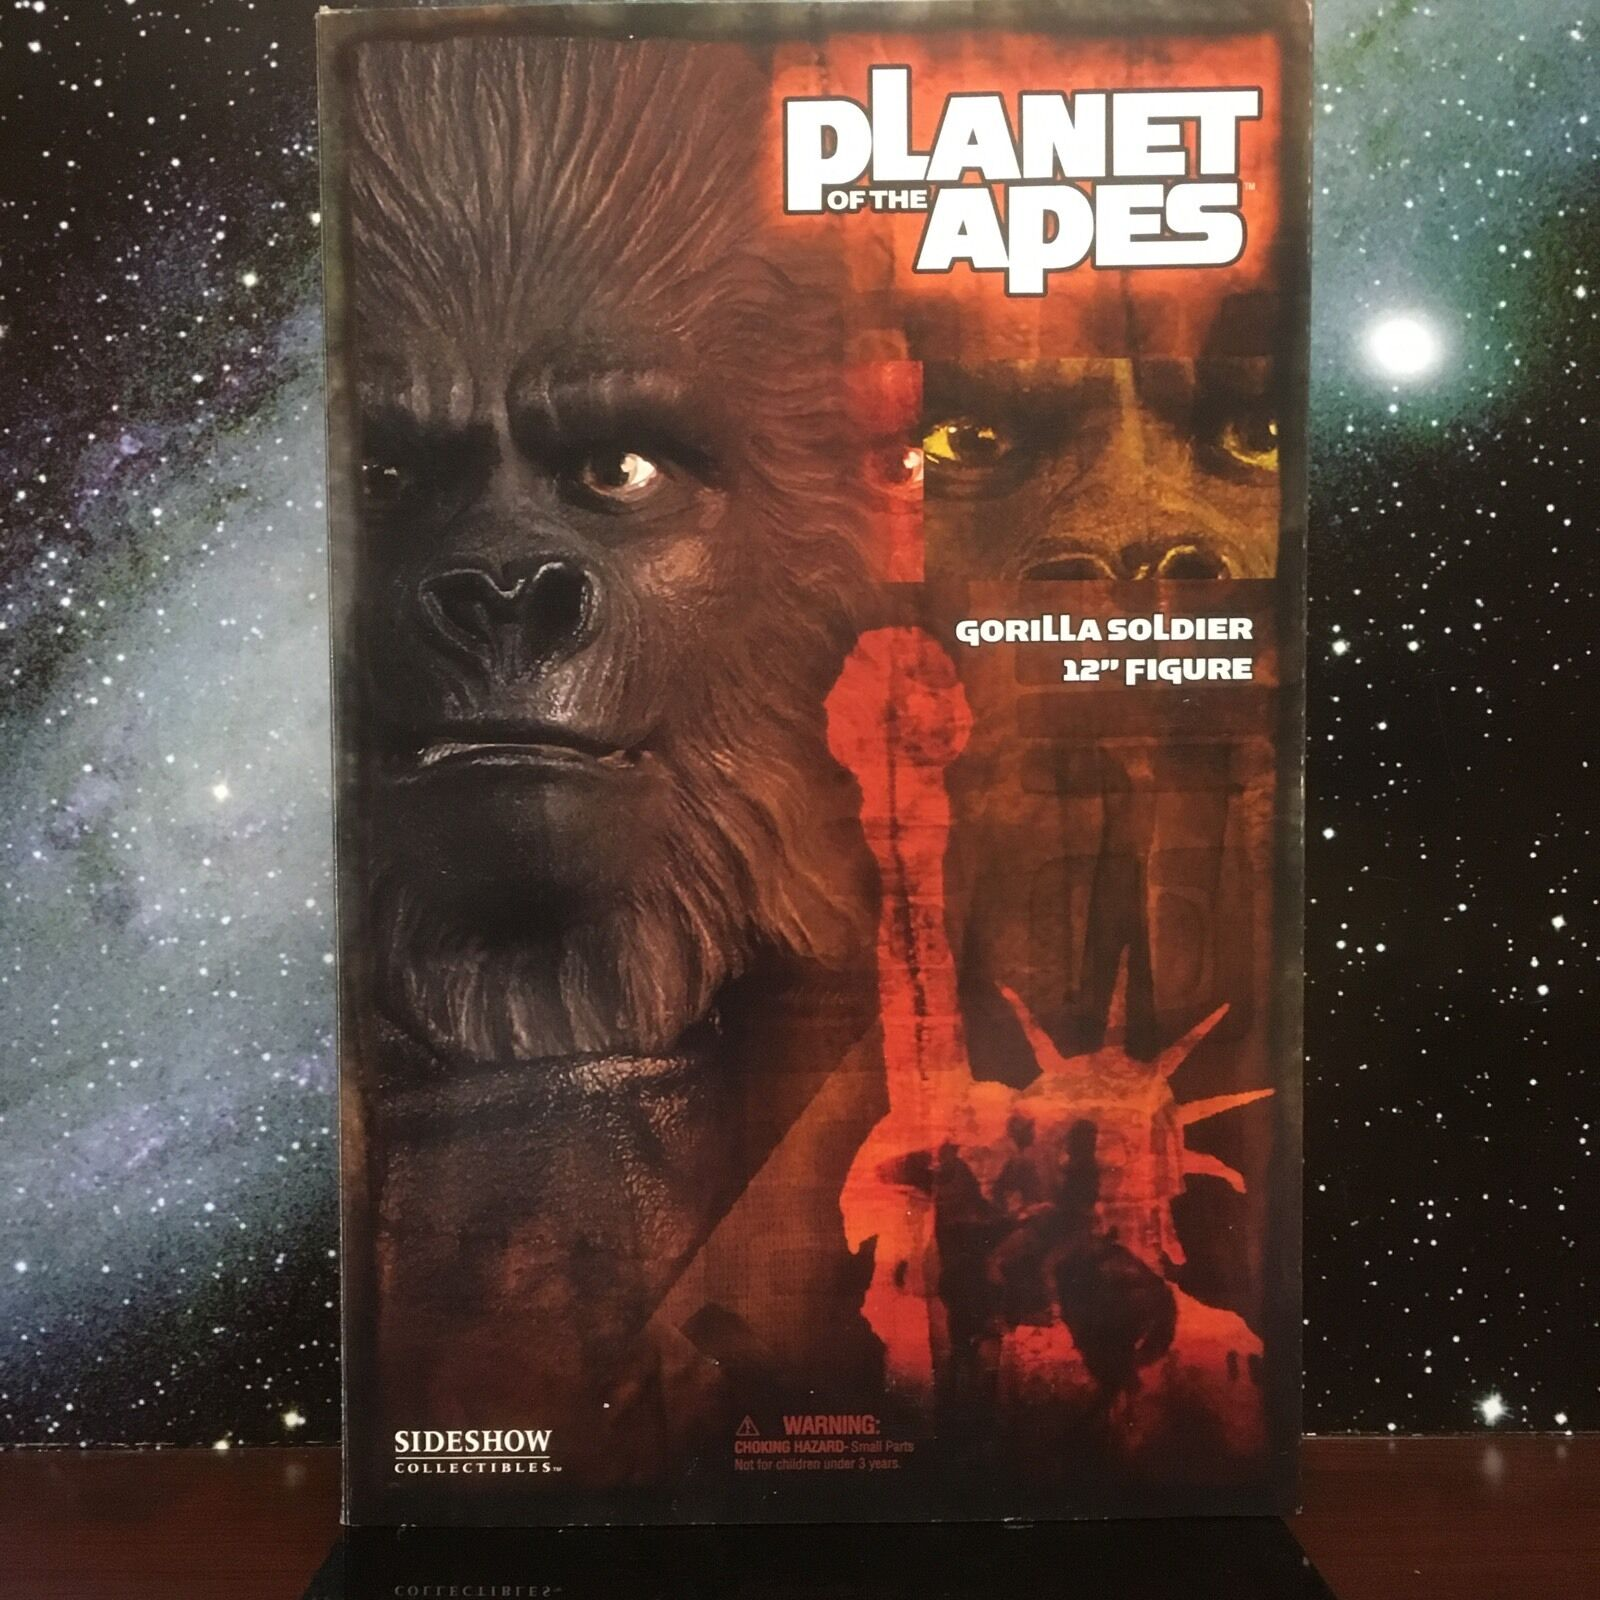 2004 SIDESHOW PLANET OF APES GORILLA SOLDIER W/ CLUB 12